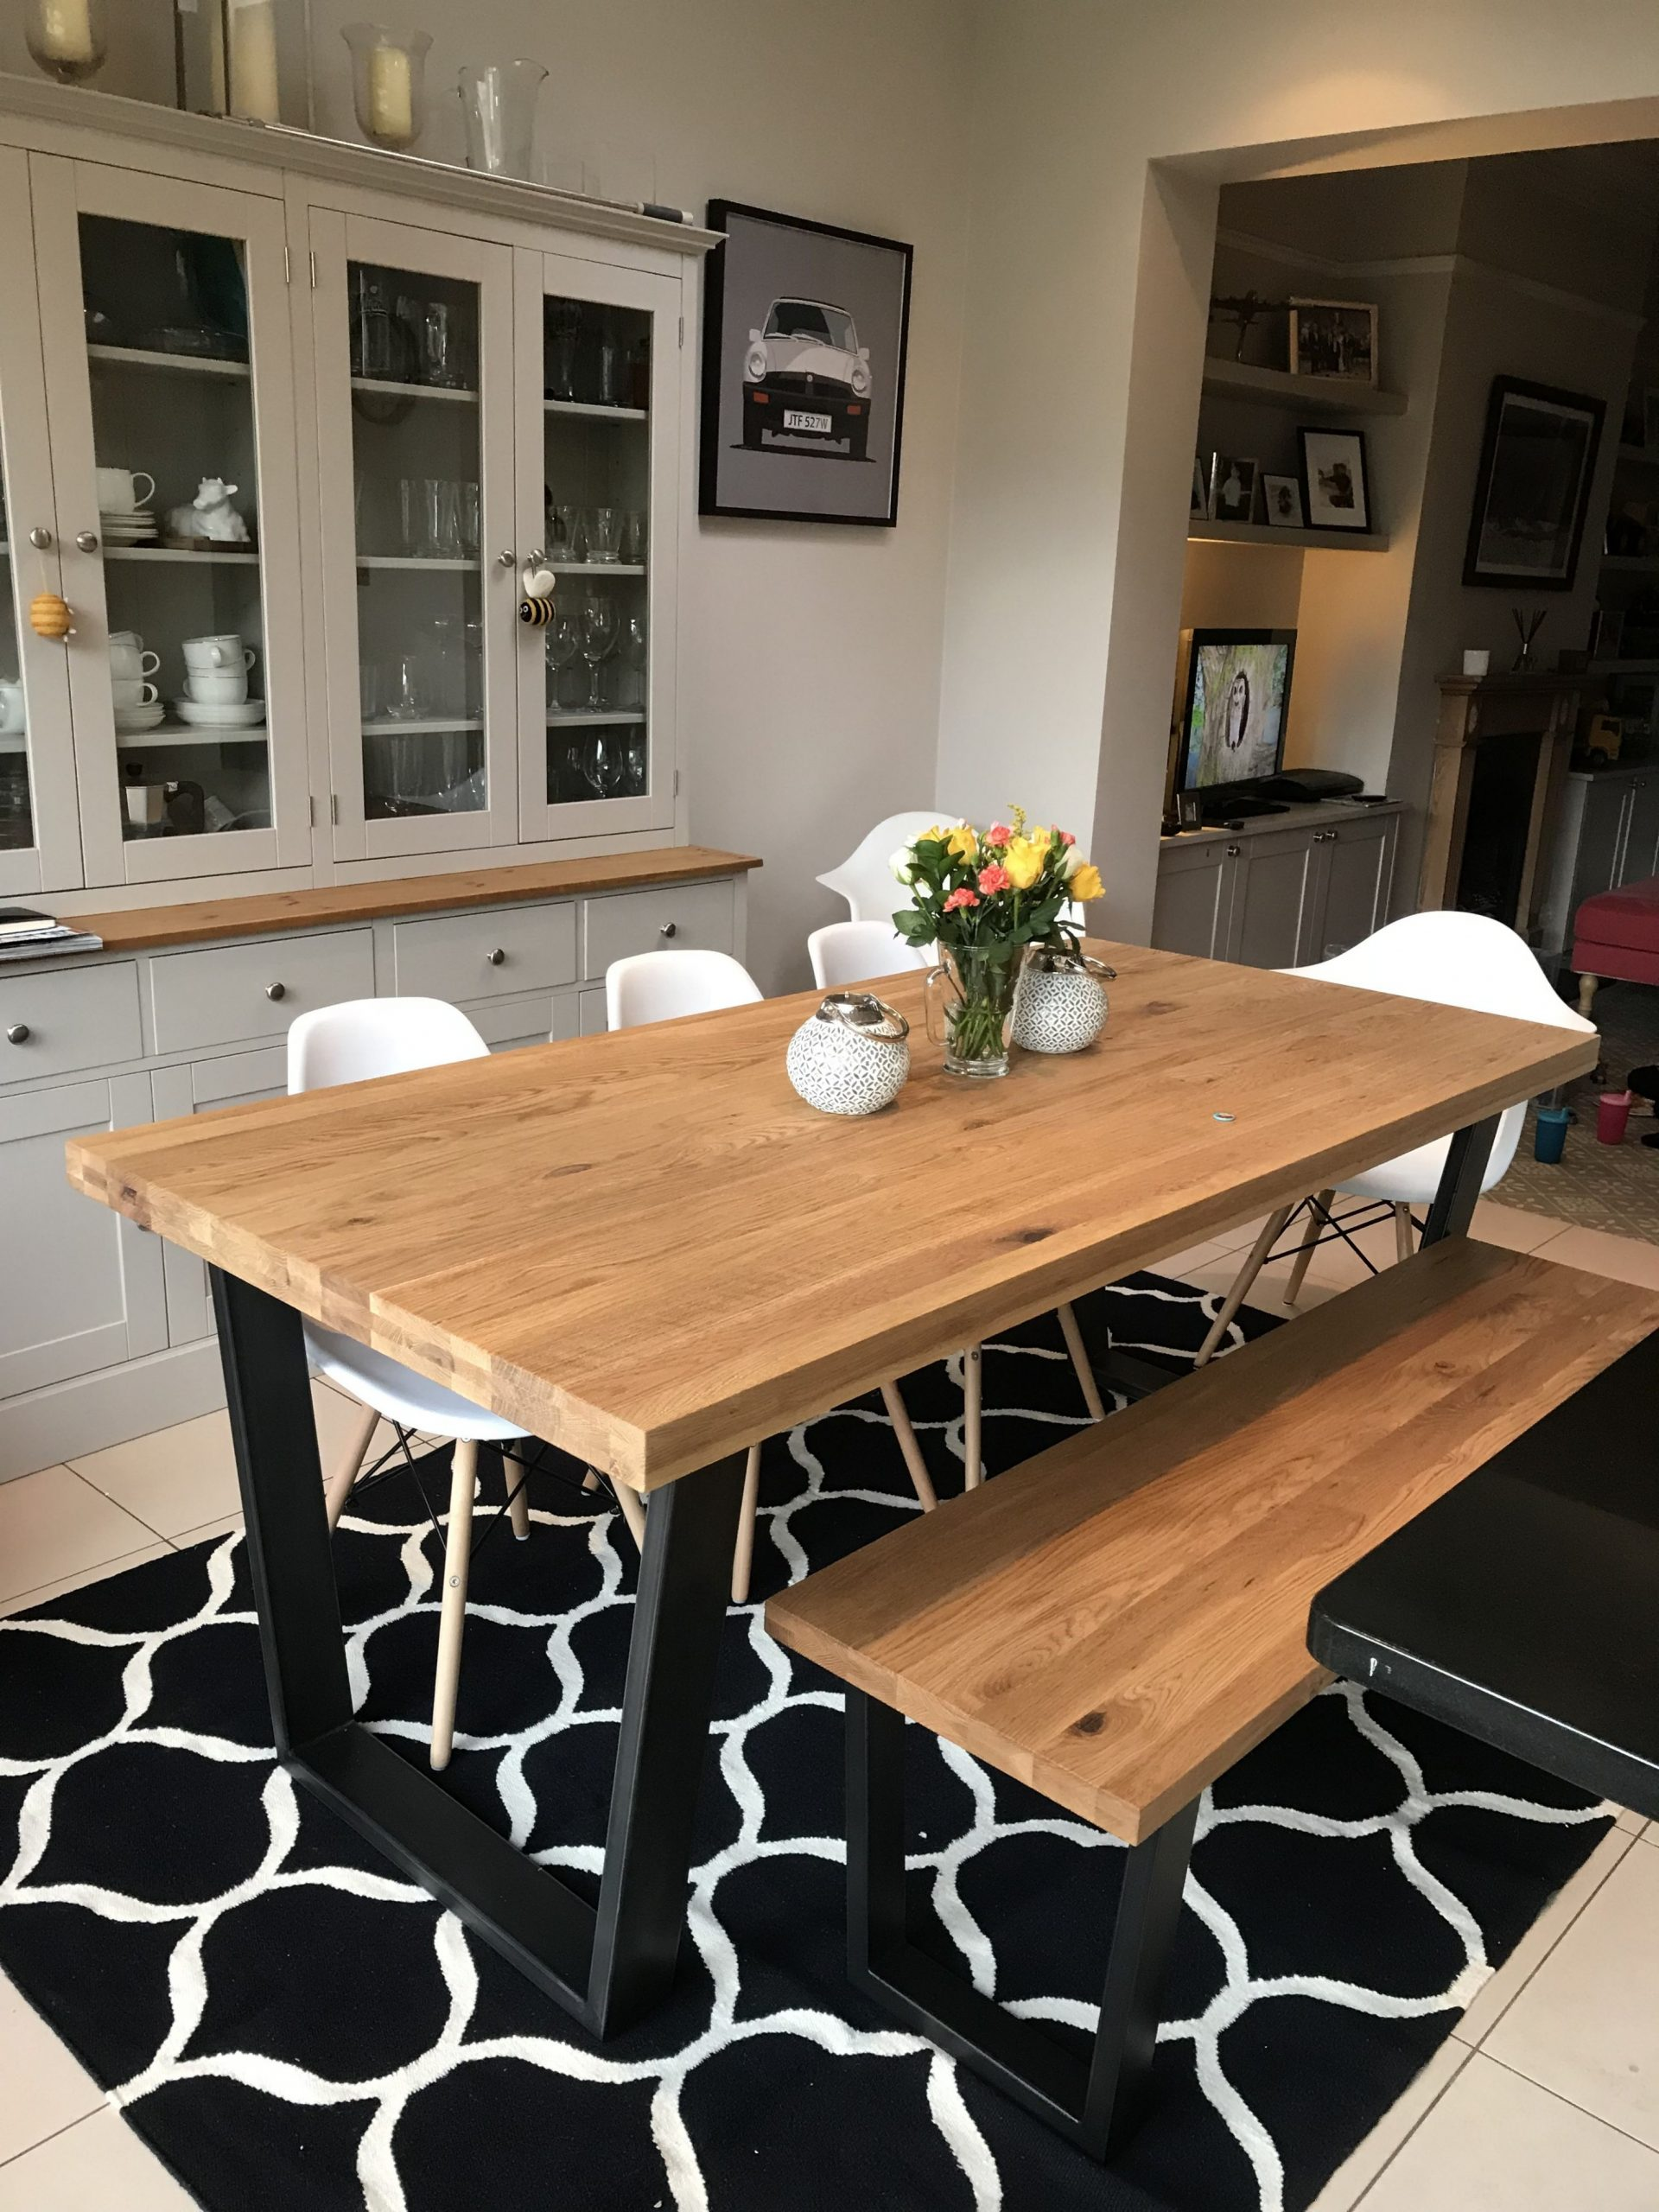 John Lewis Calia dining table and bench  Dining table with bench  - John Lewis Dining Room Ideas